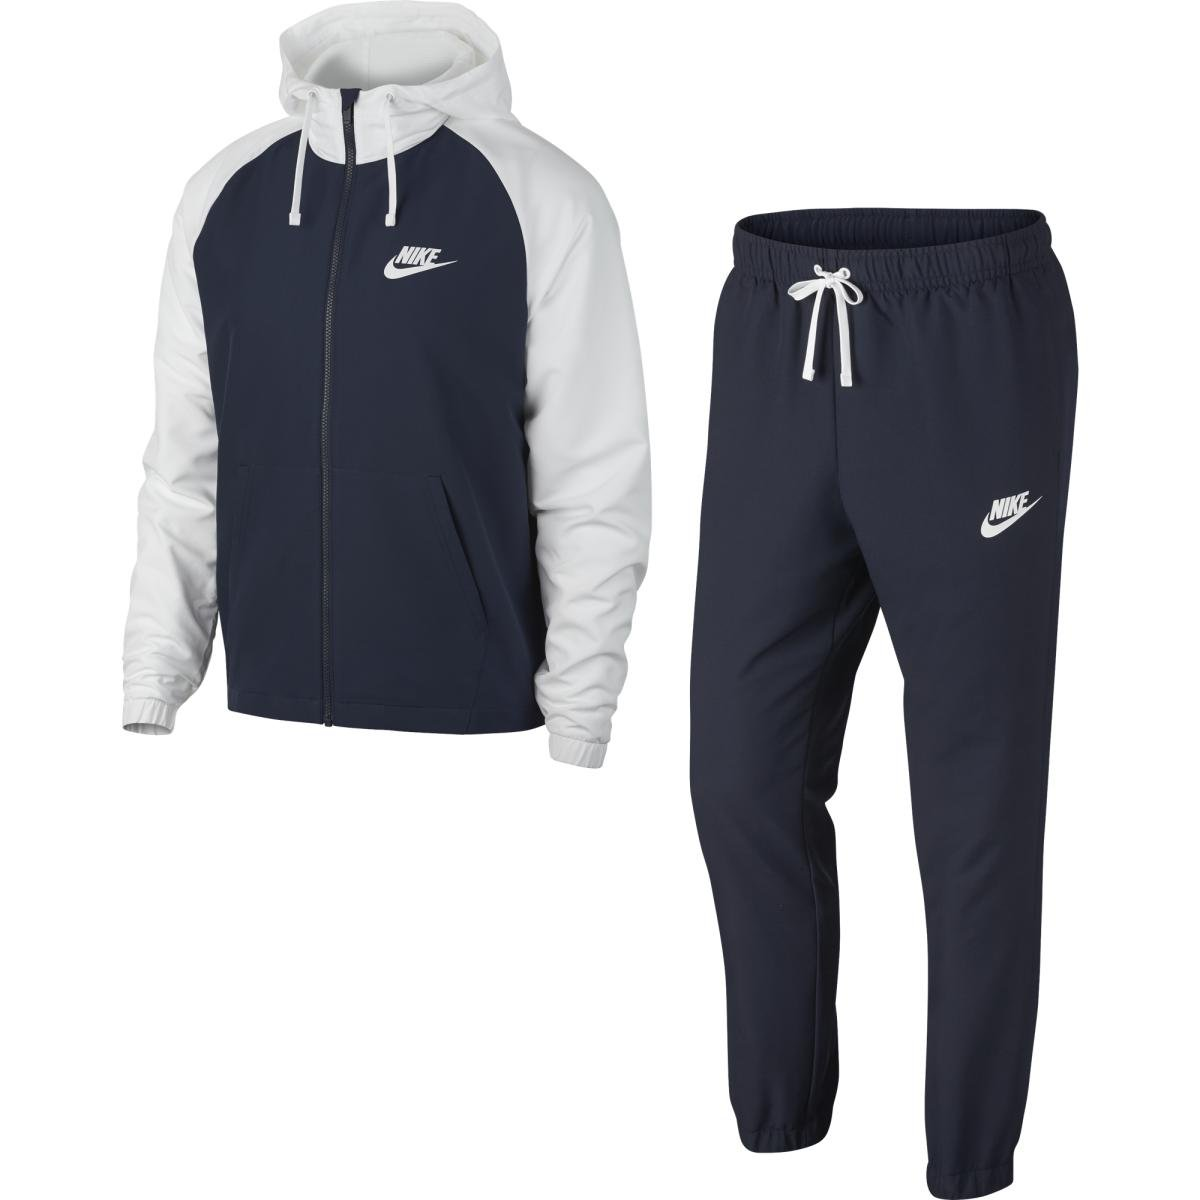 0d3787b2e3716 NIKE CHÁNDAL HOMBRE 861772-100 NSW - Deportes Liverpool